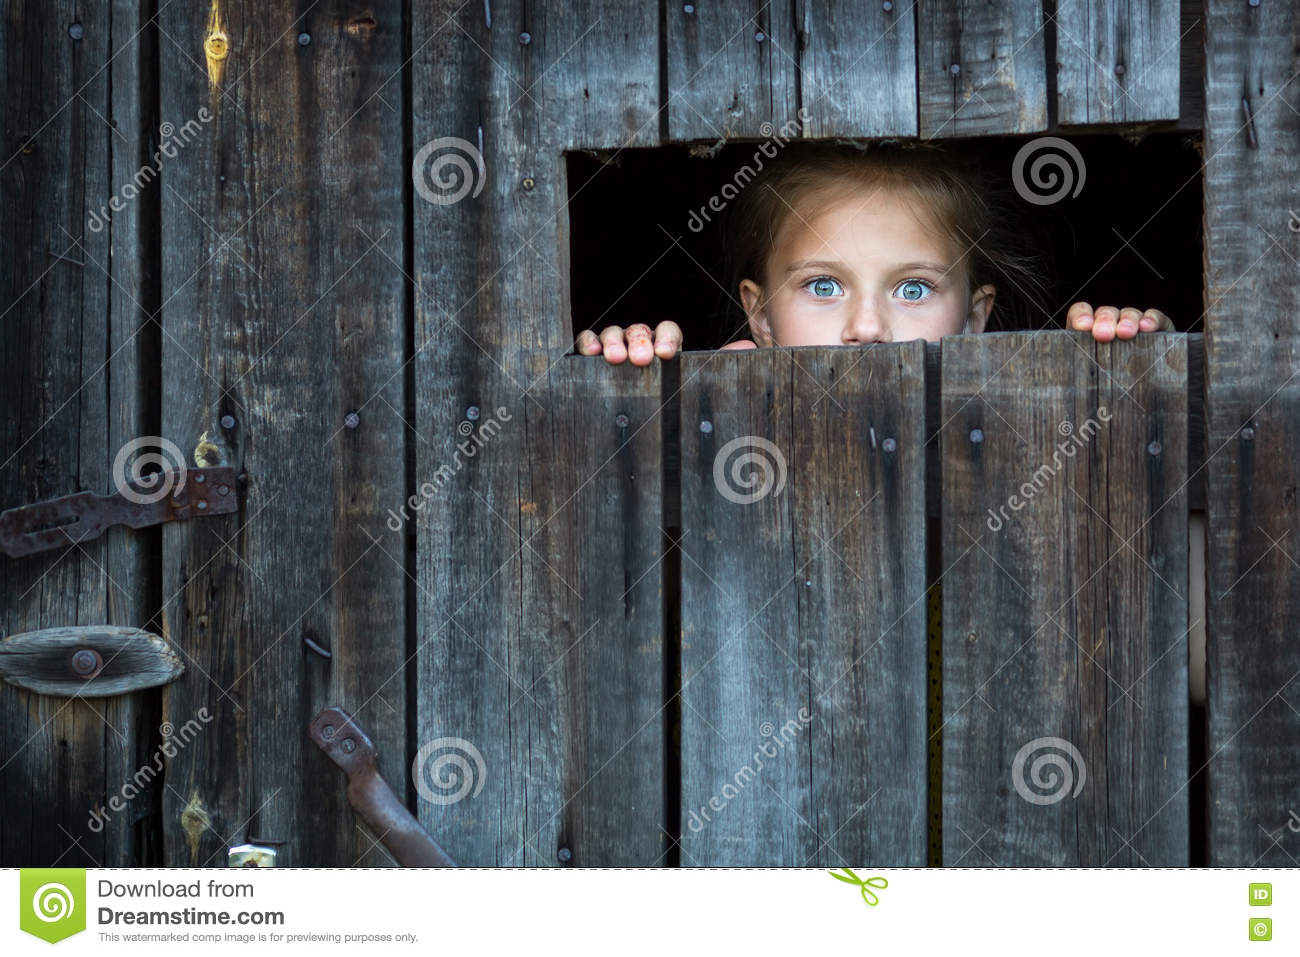 Locked the child anxiously looks through the crack in the barn door. Fright.